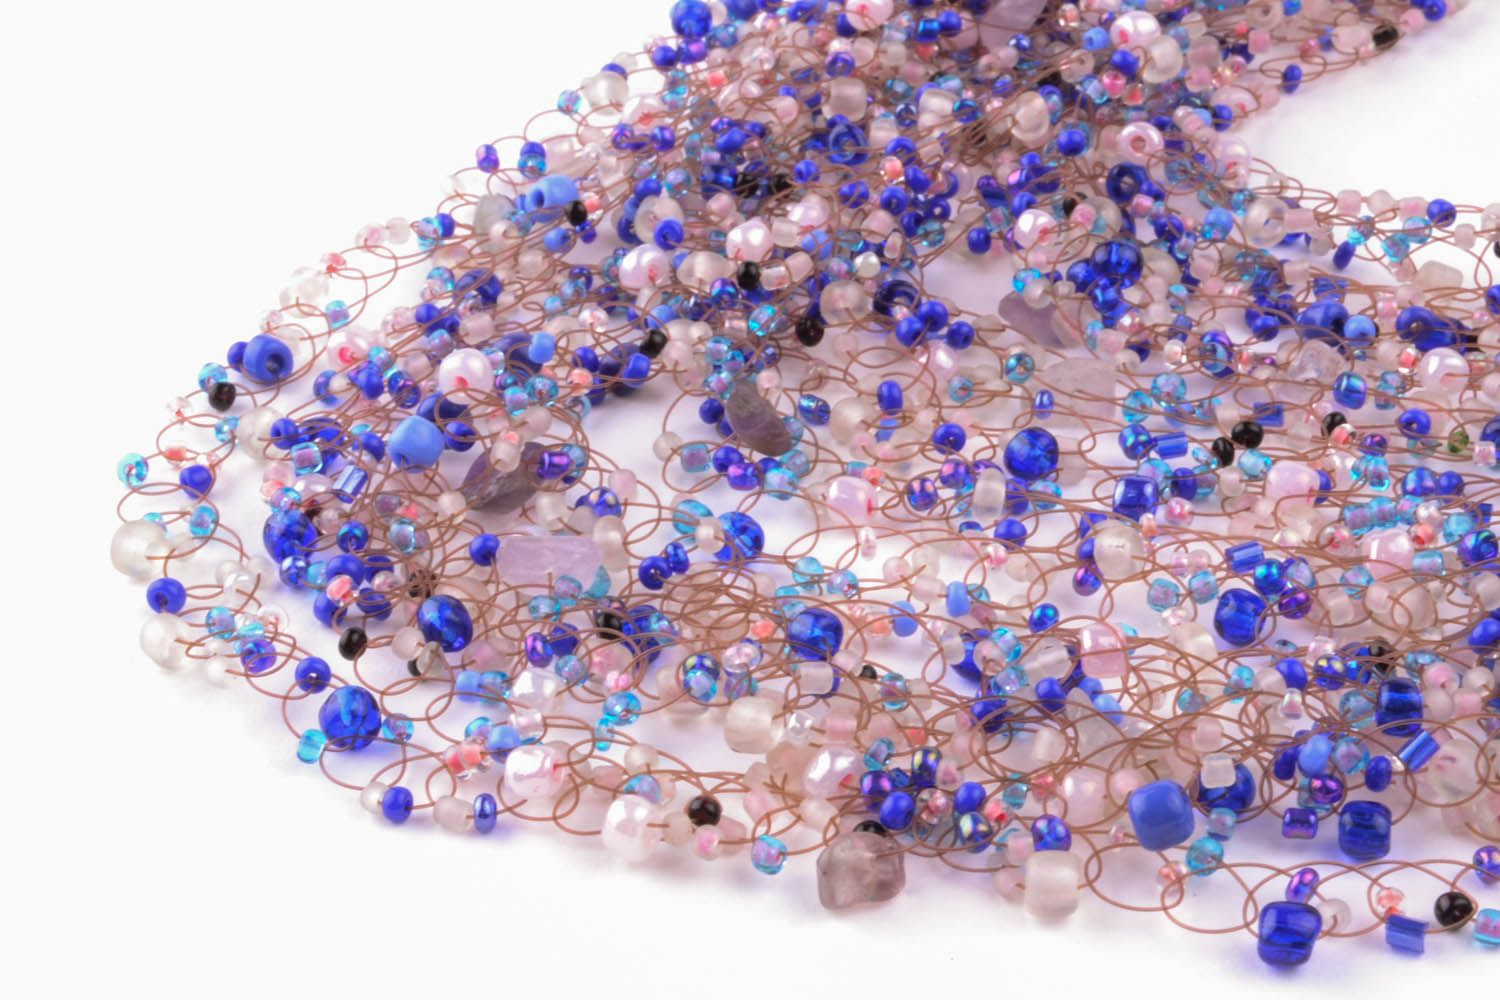 Violet necklace made of beads and natural stones photo 2